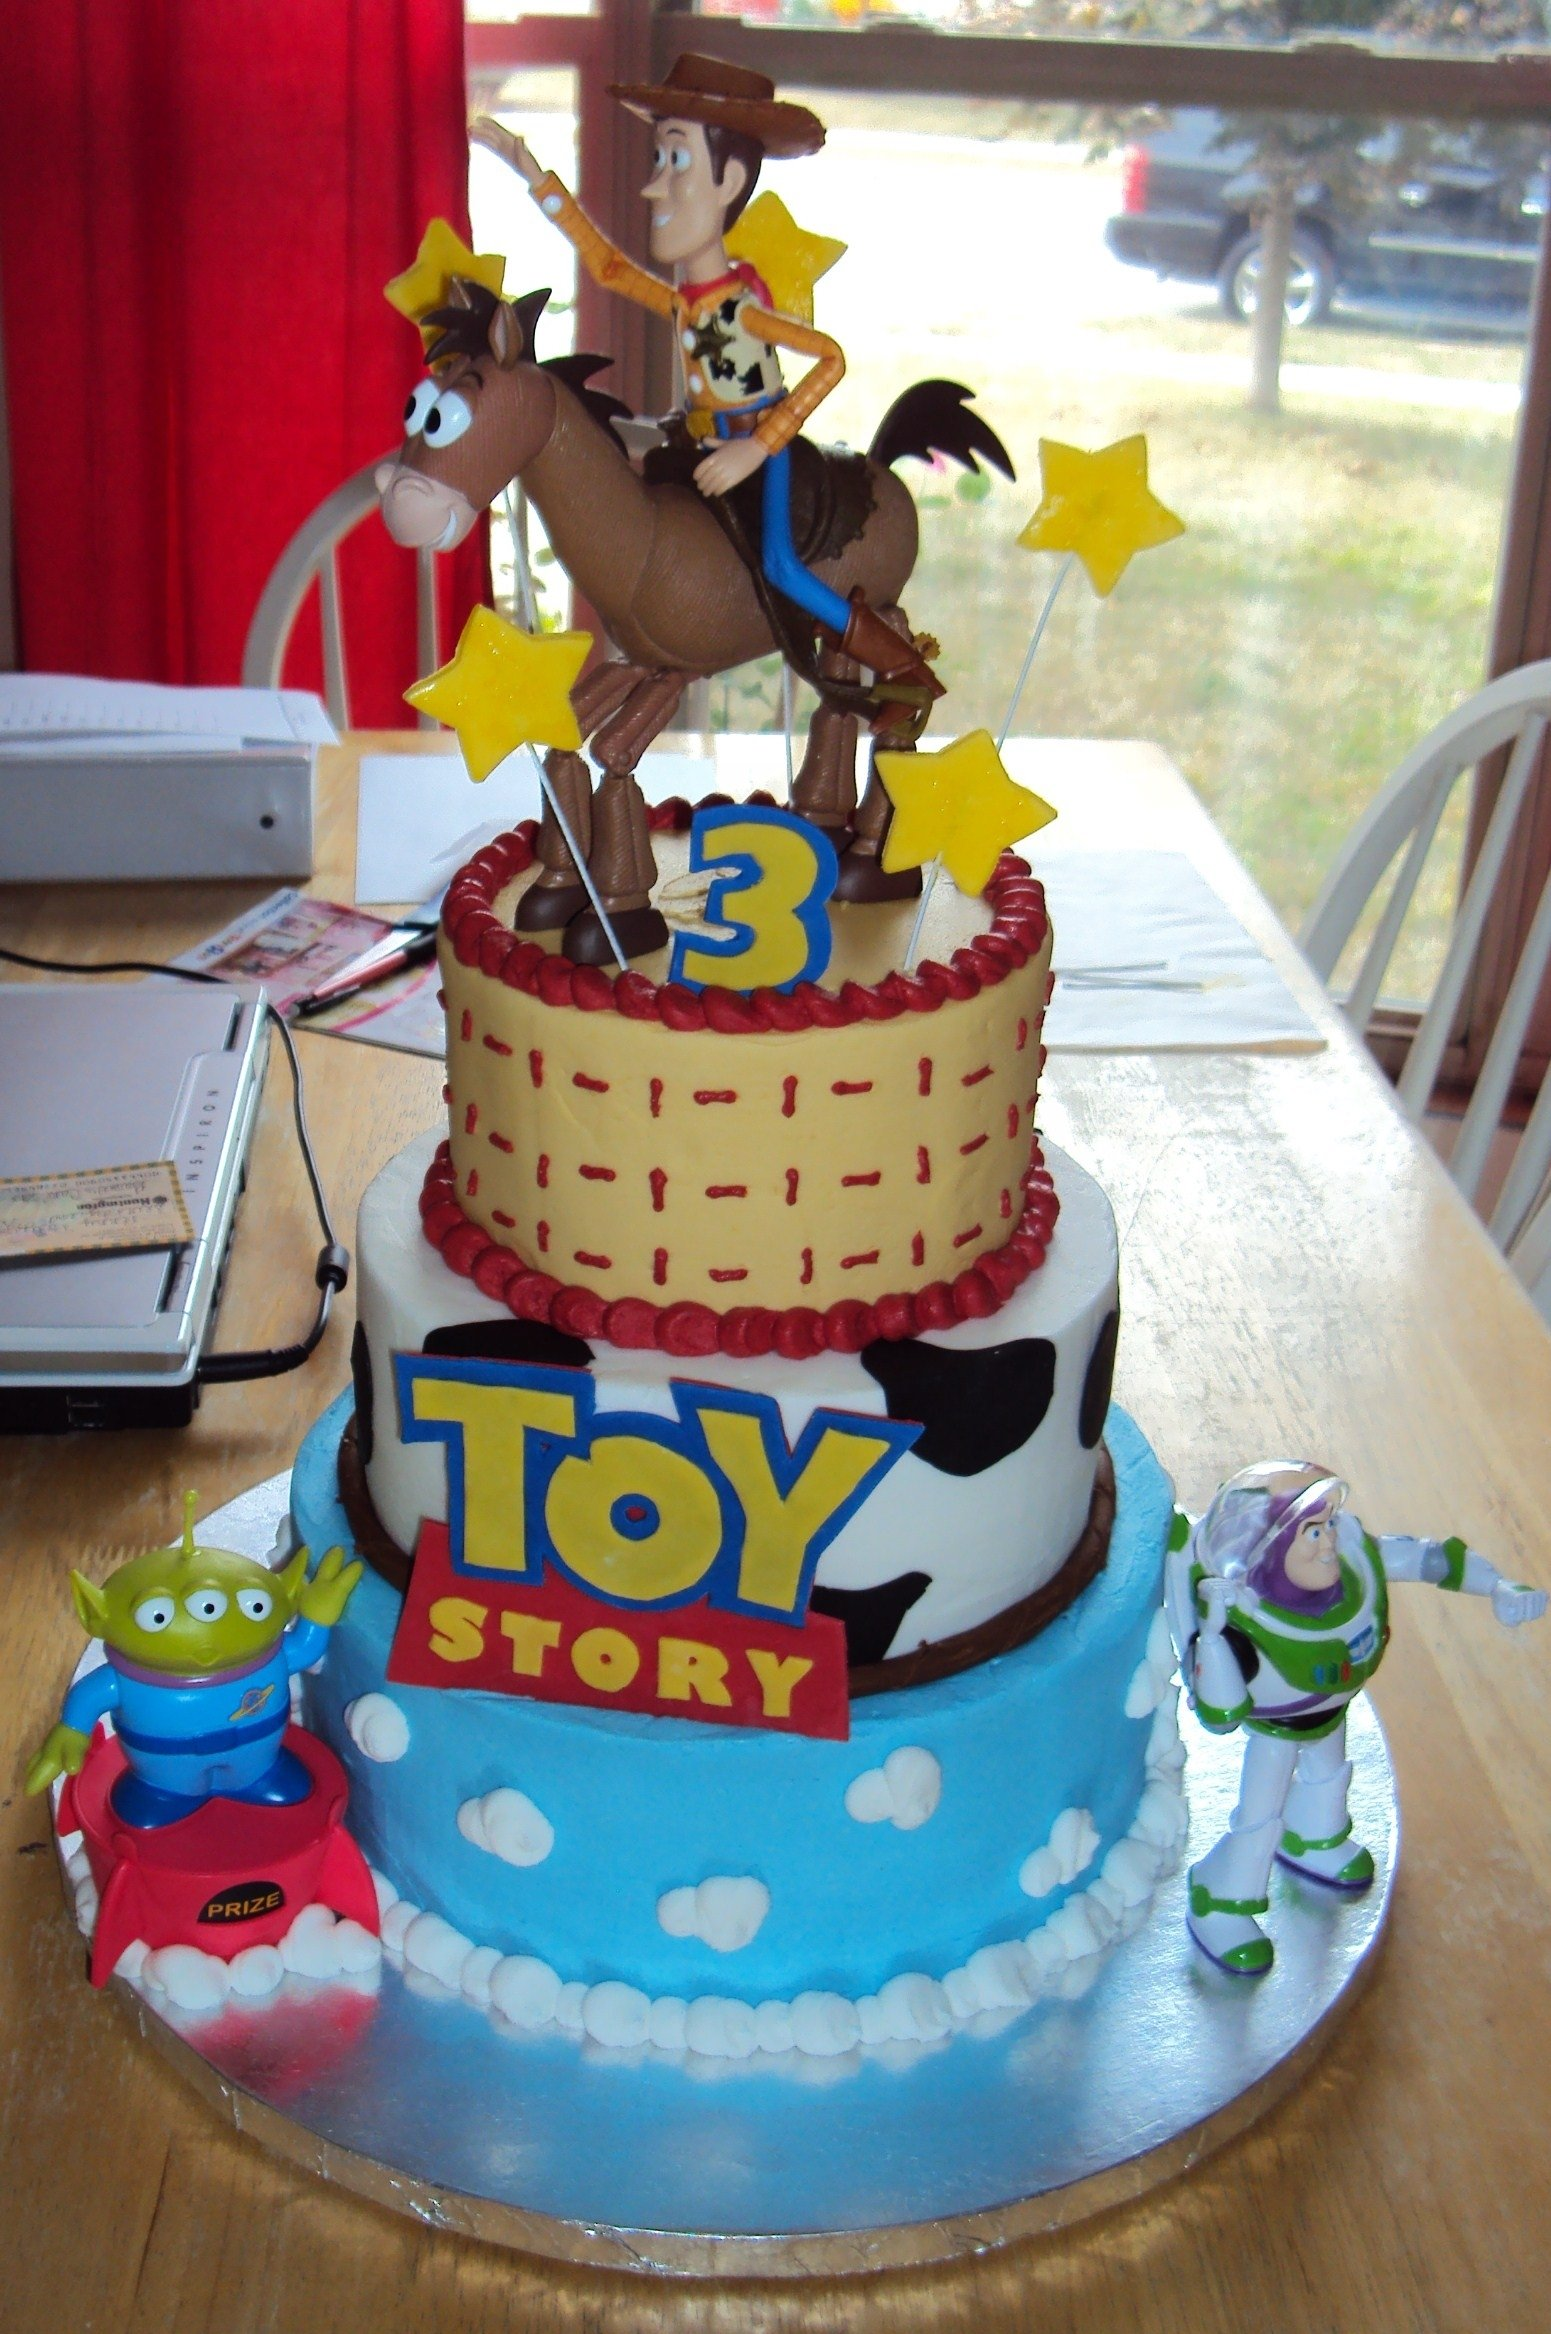 toy story cakes – decoration ideas | little birthday cakes